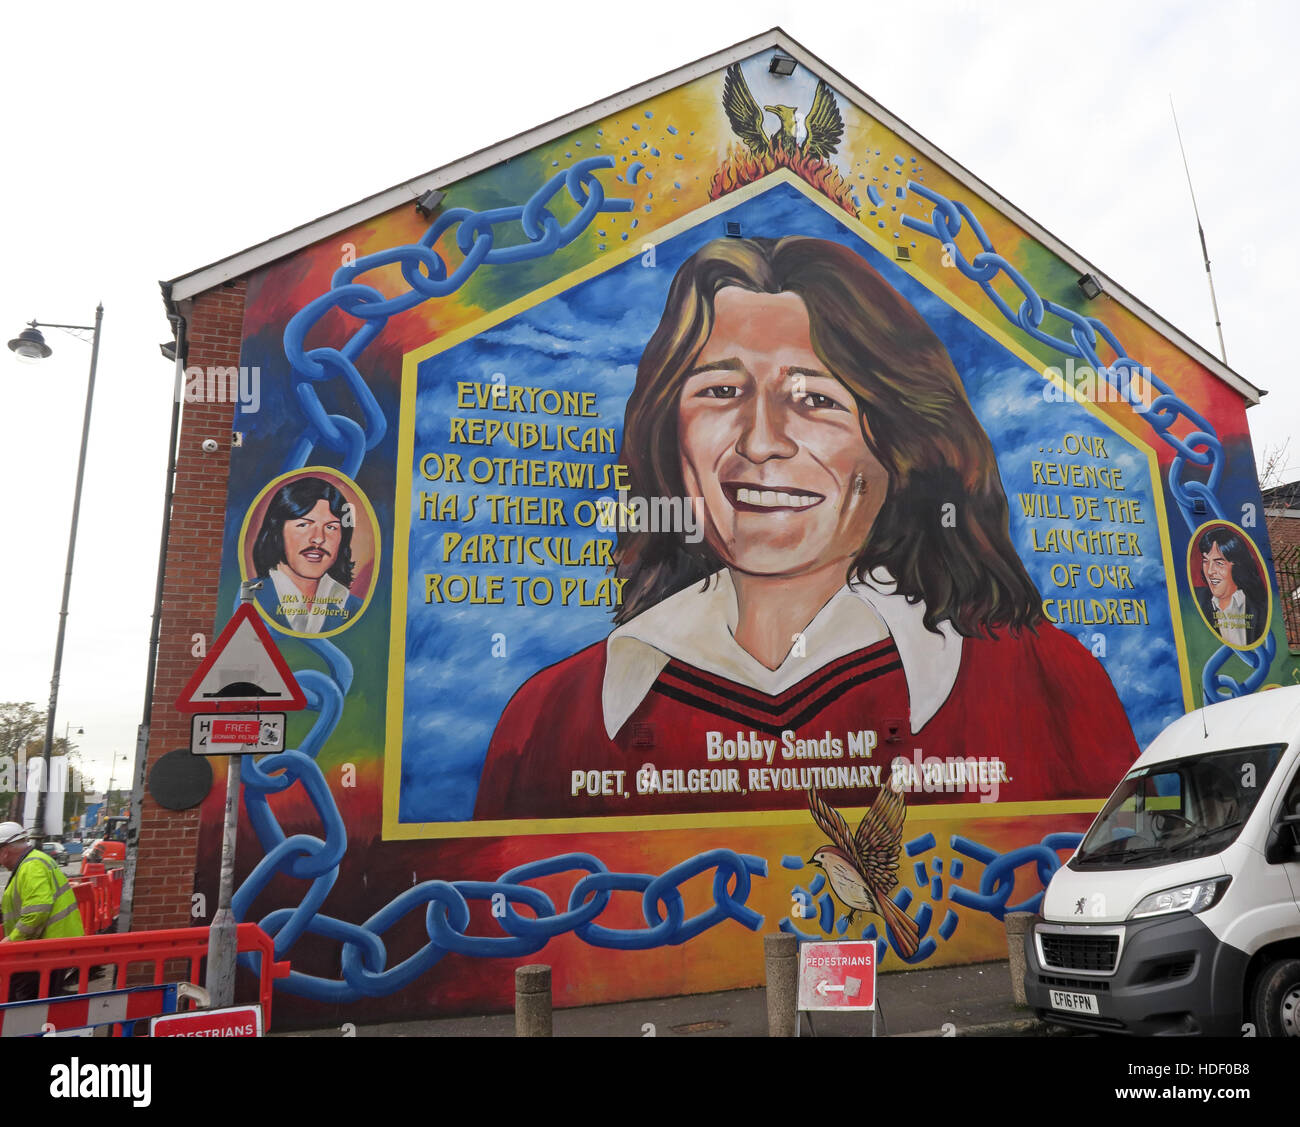 MP Bobby Sands - Belfast Falls Rd Rebublican Mural Stock Photo